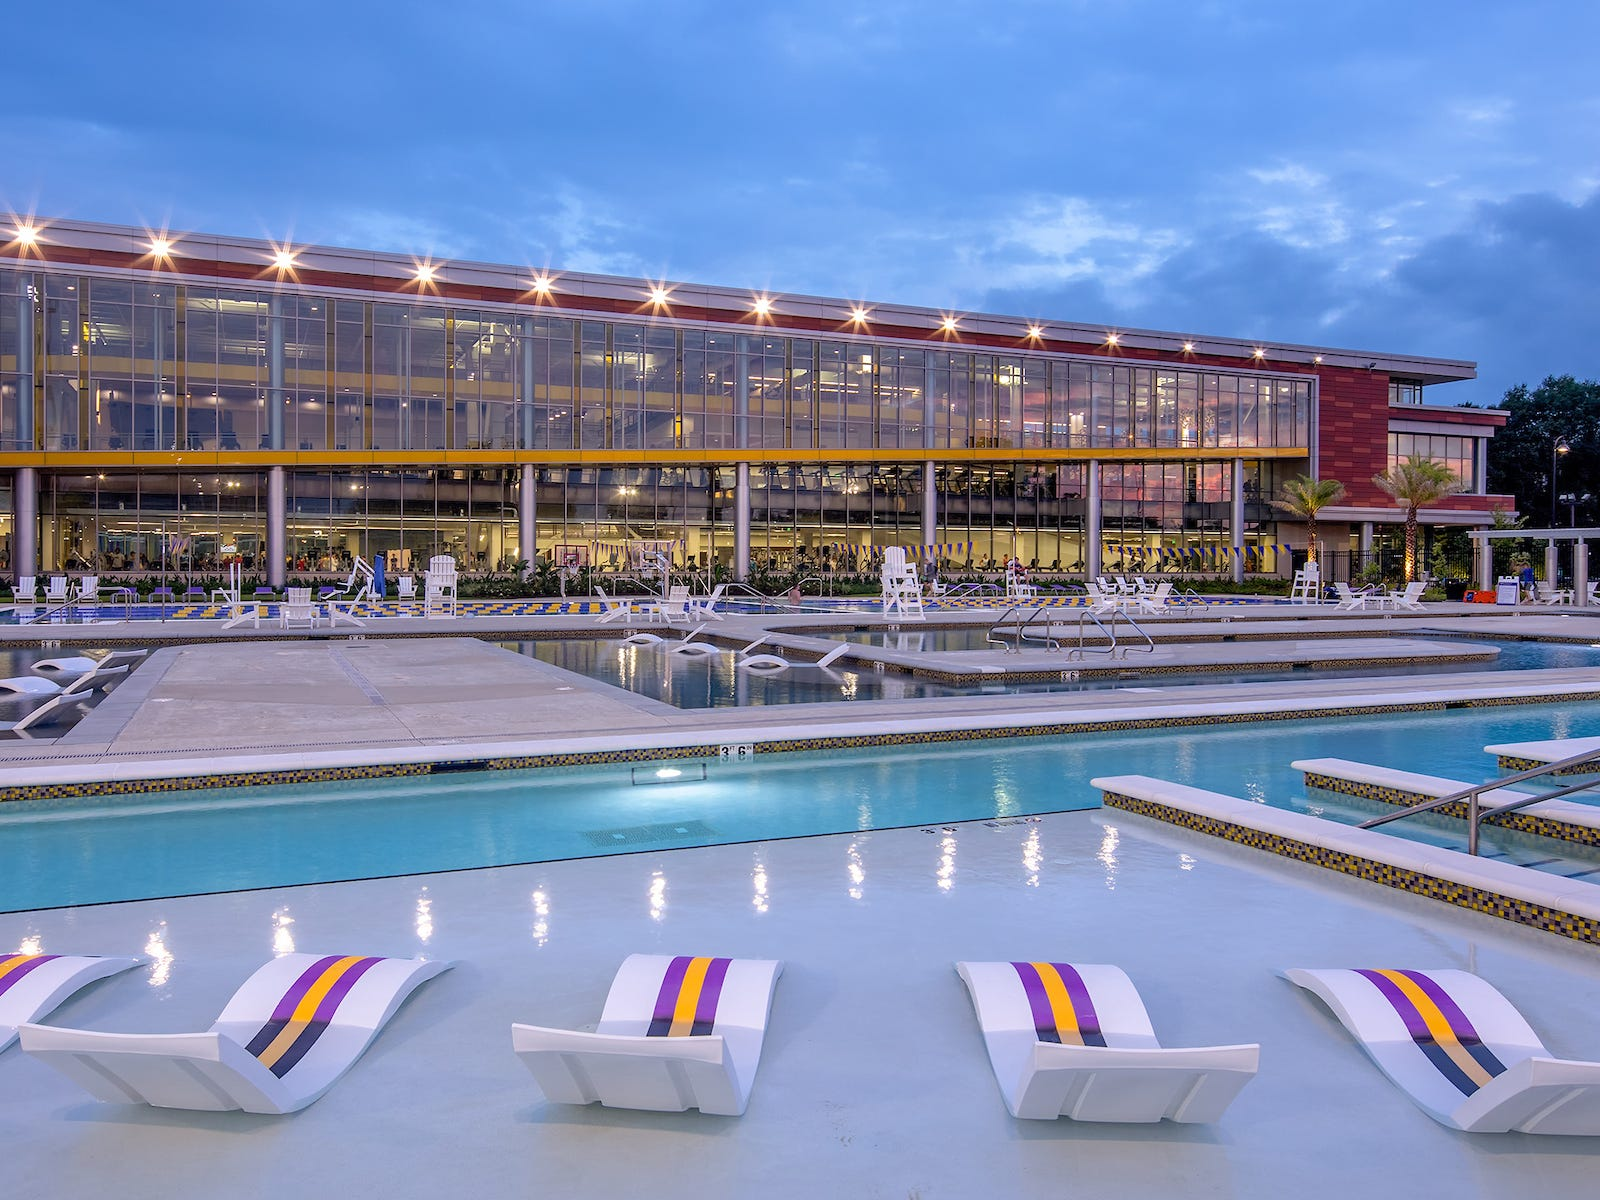 Louisiana: Louisiana State University's Student Recreation Complex includes an outdoor aquatic and adventure center and a leisure pool spelling out the letters LSU.